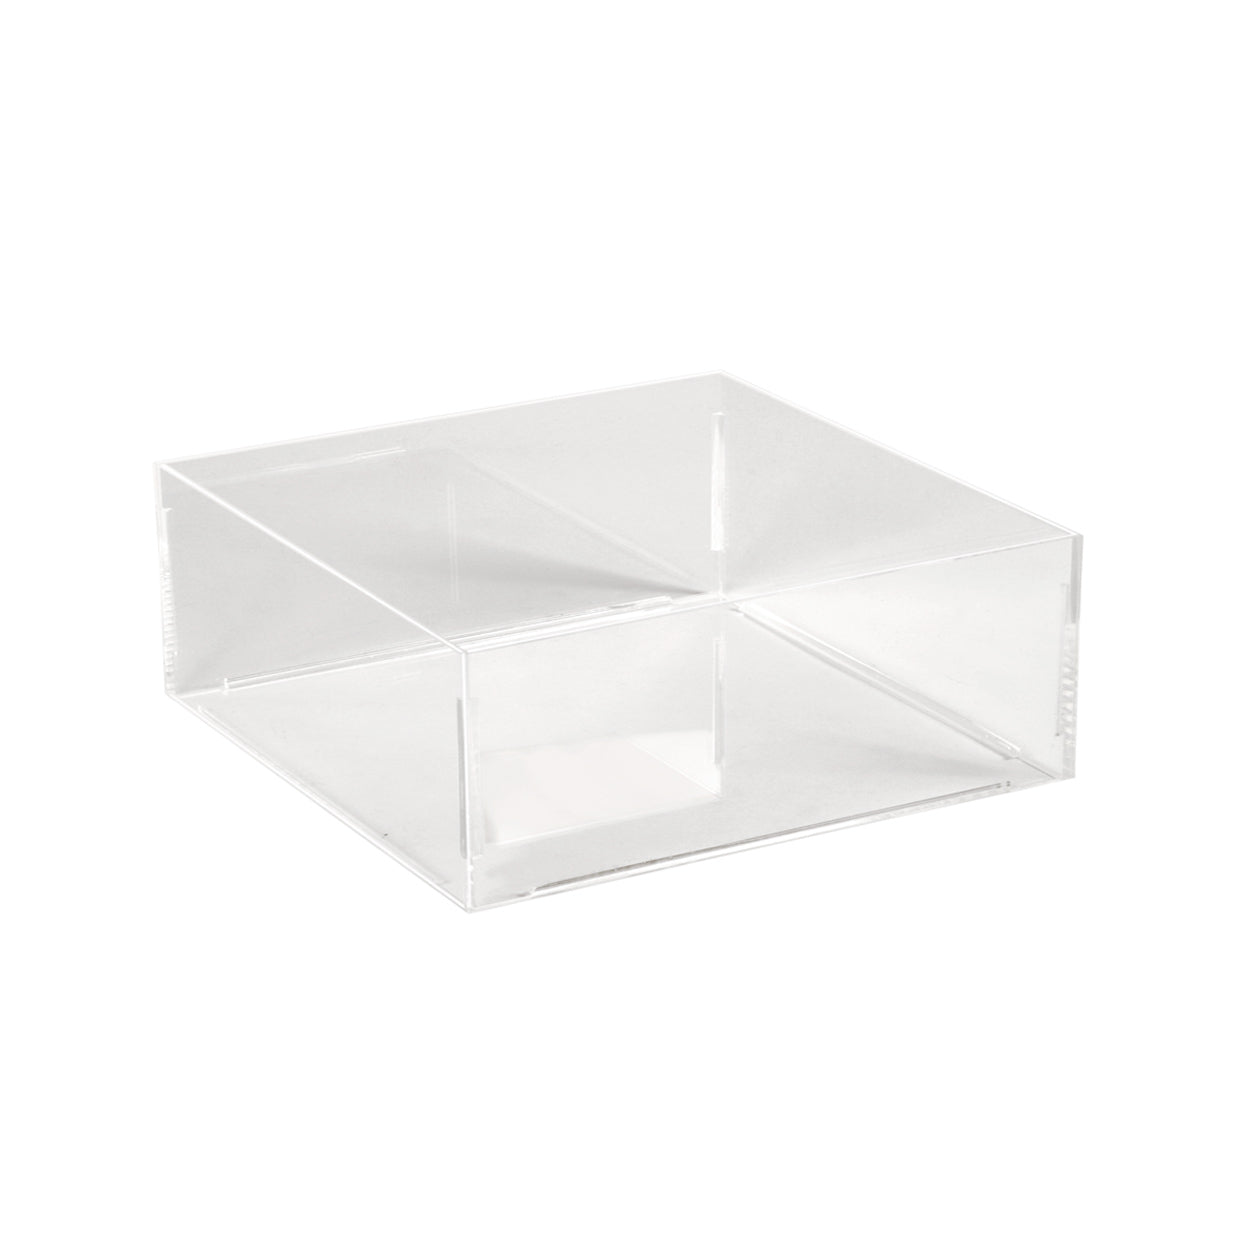 Acrylic Container Square 200 X 200 X 100Mm H